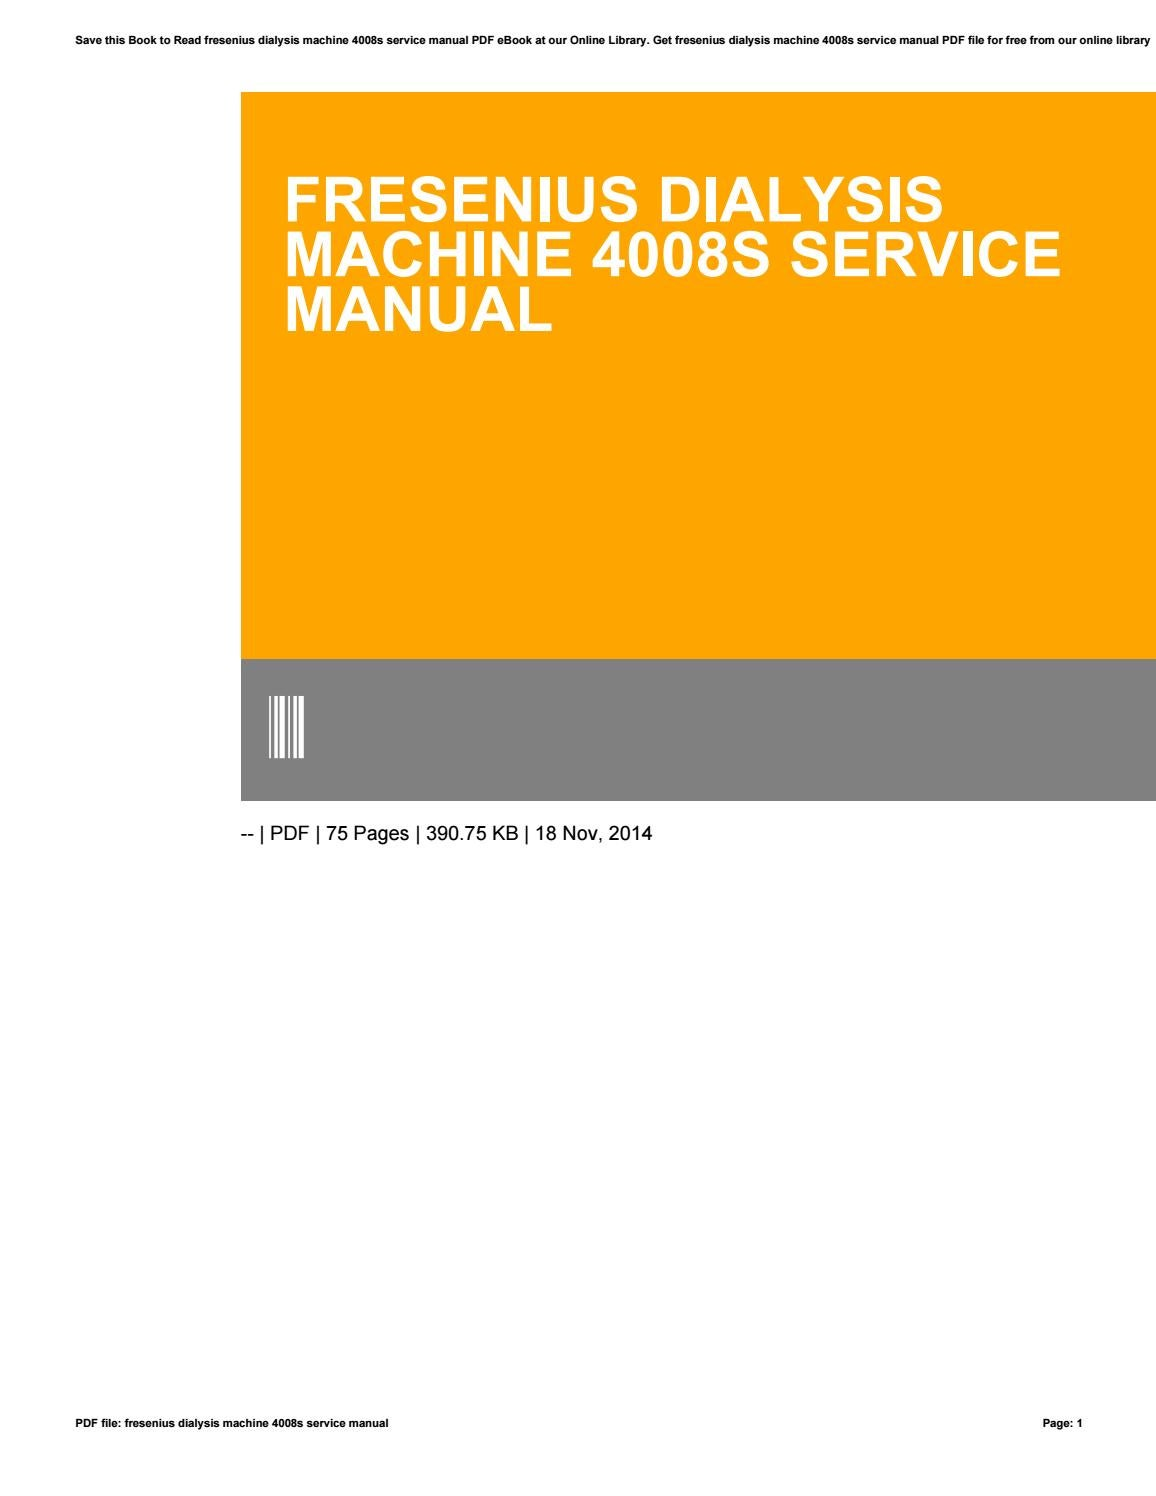 Fresenius dialysis machine 4008s service manual by DanielleTalmage1902 -  issuu